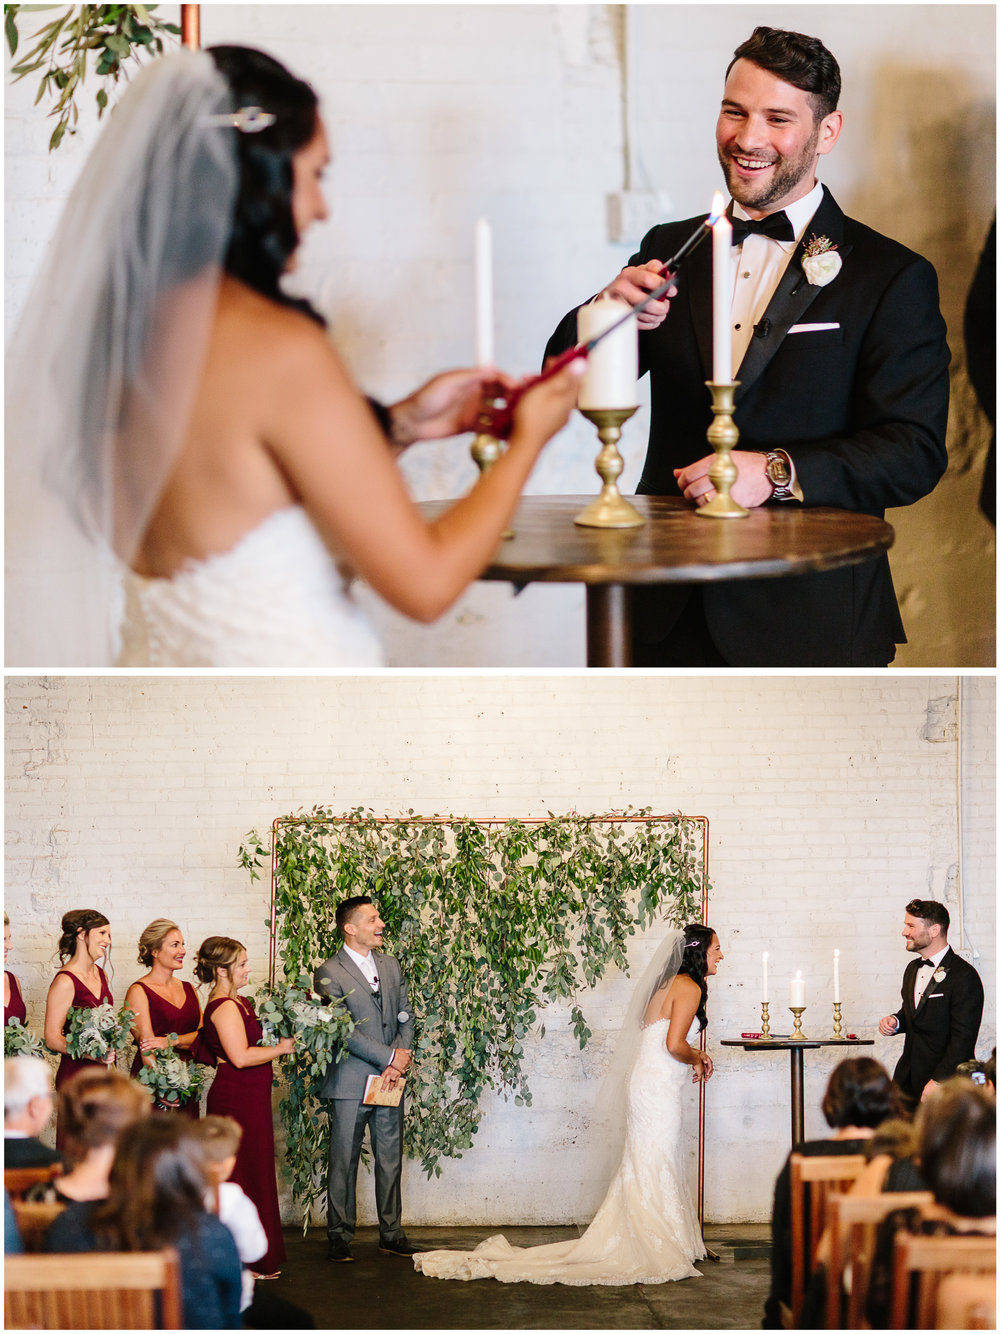 moss_denver_wedding_51.jpg